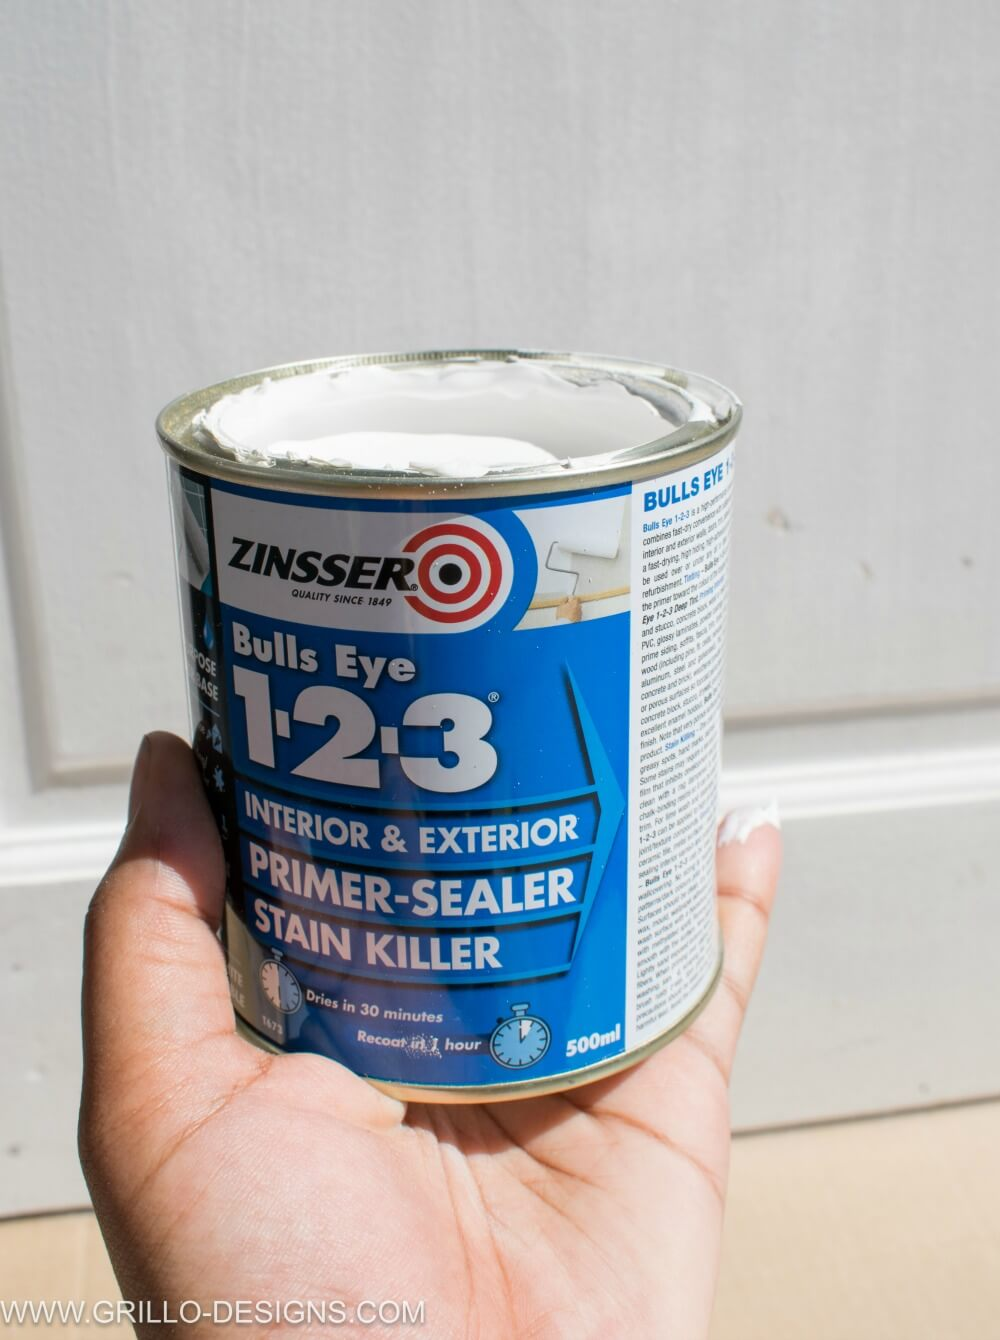 Paint glass panel doors tutorial - primer used is zinsser bulls eye 123